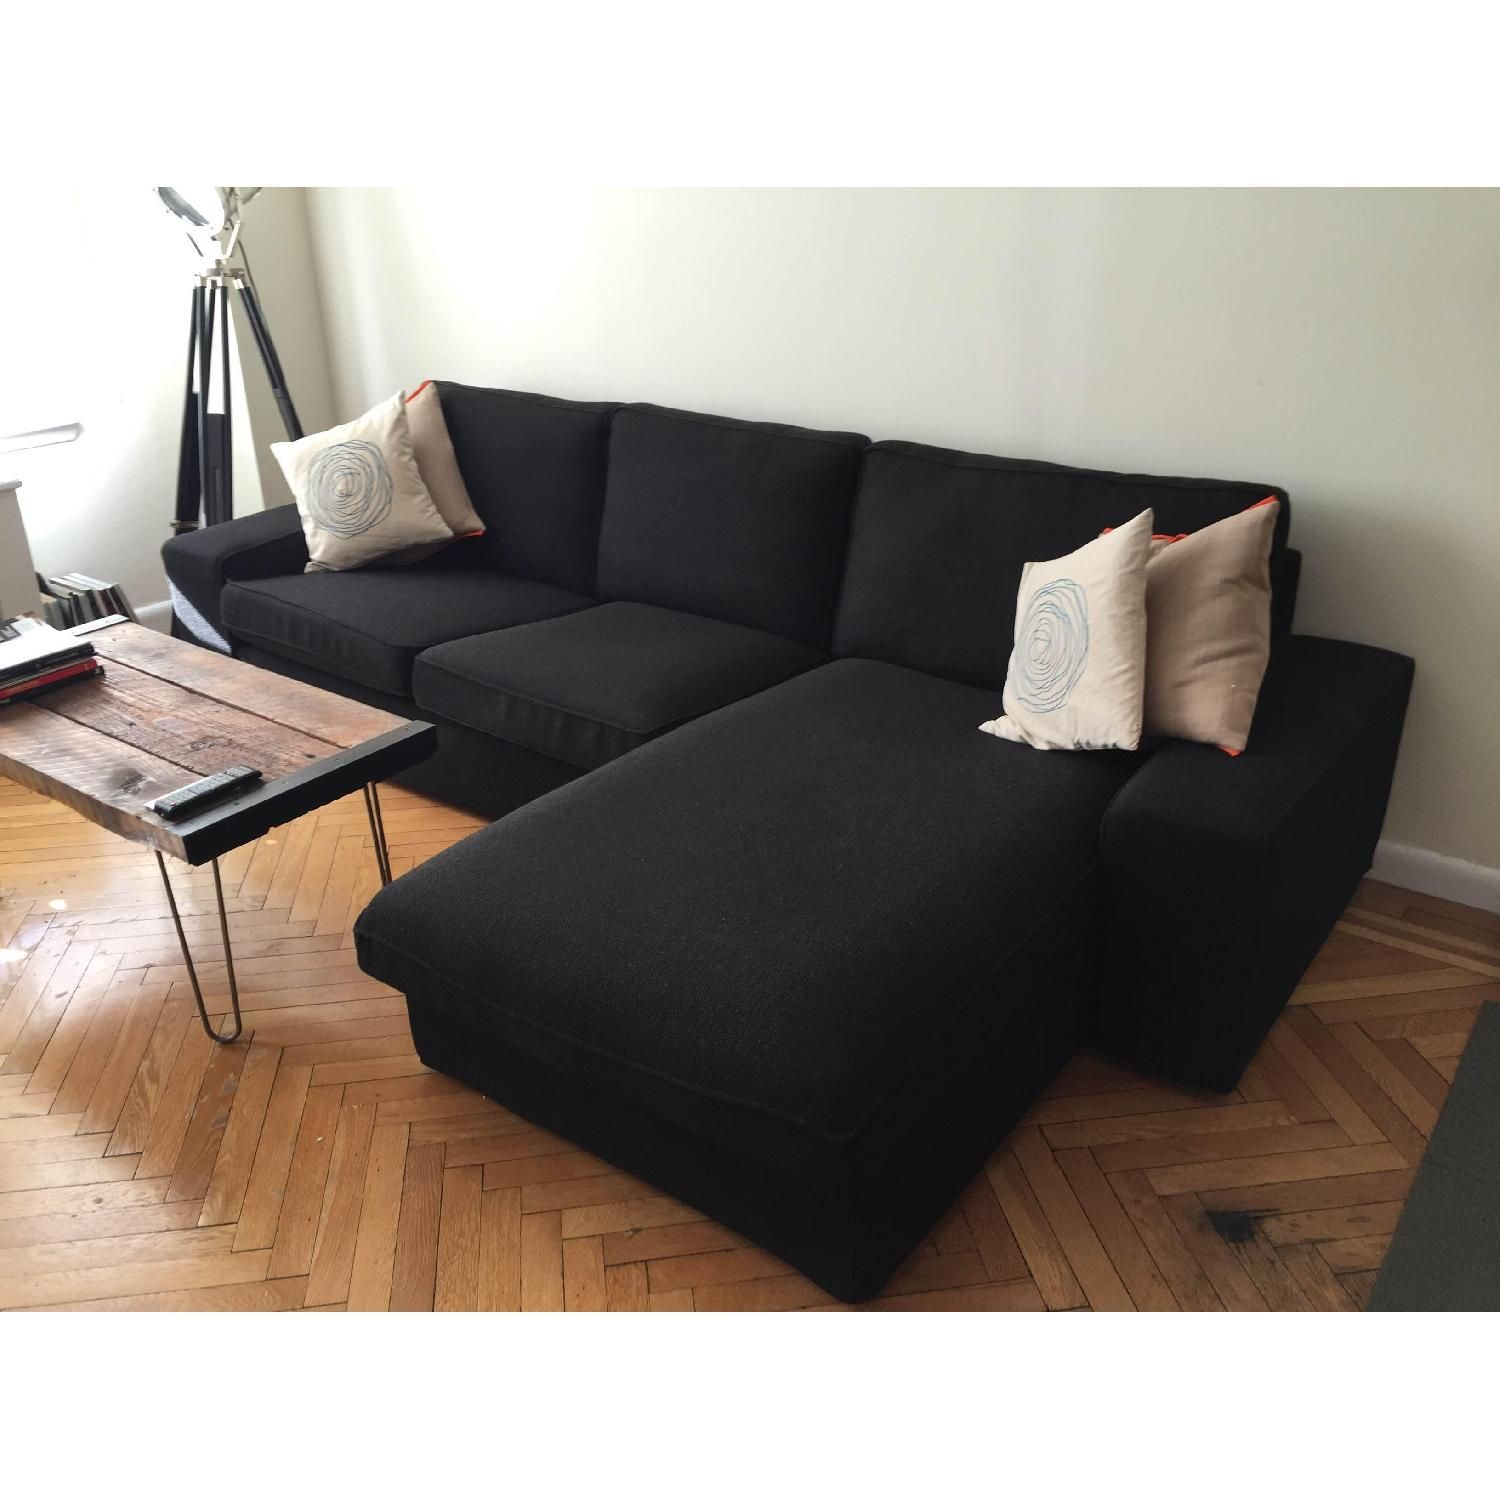 Ikea Kivik Loveseat and Chaise Lounge Sell used